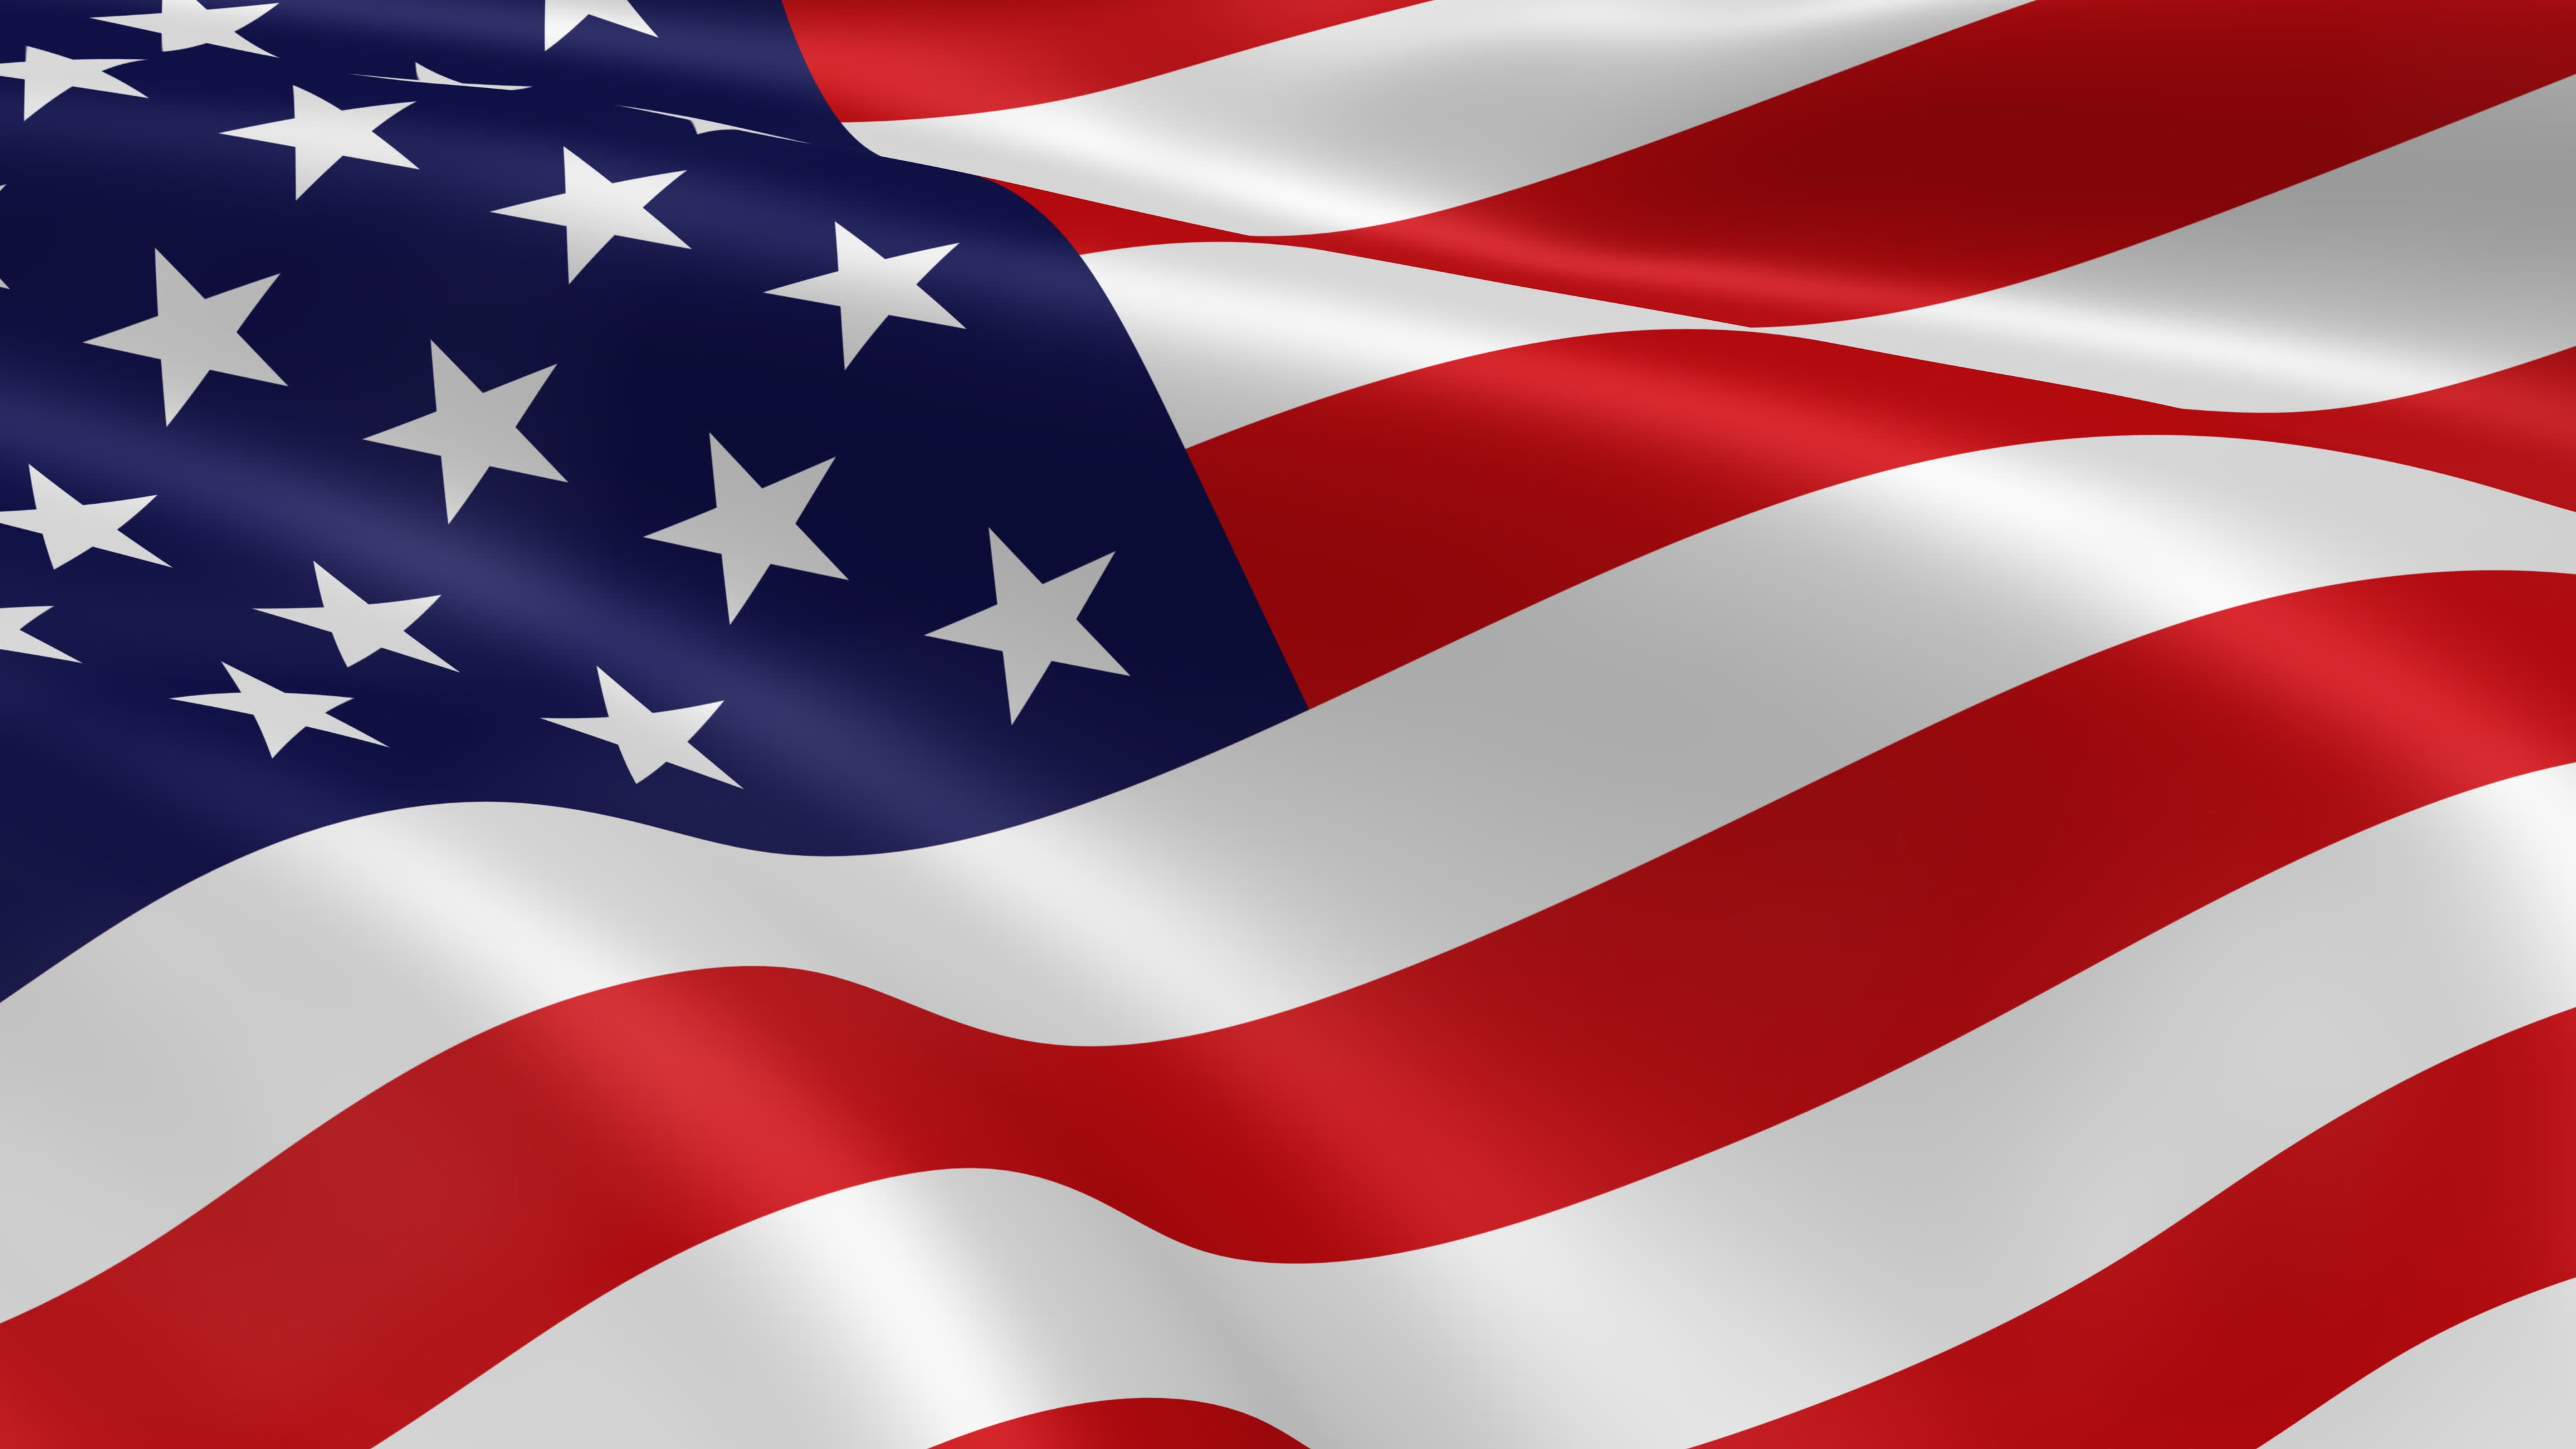 american-flag-images-12